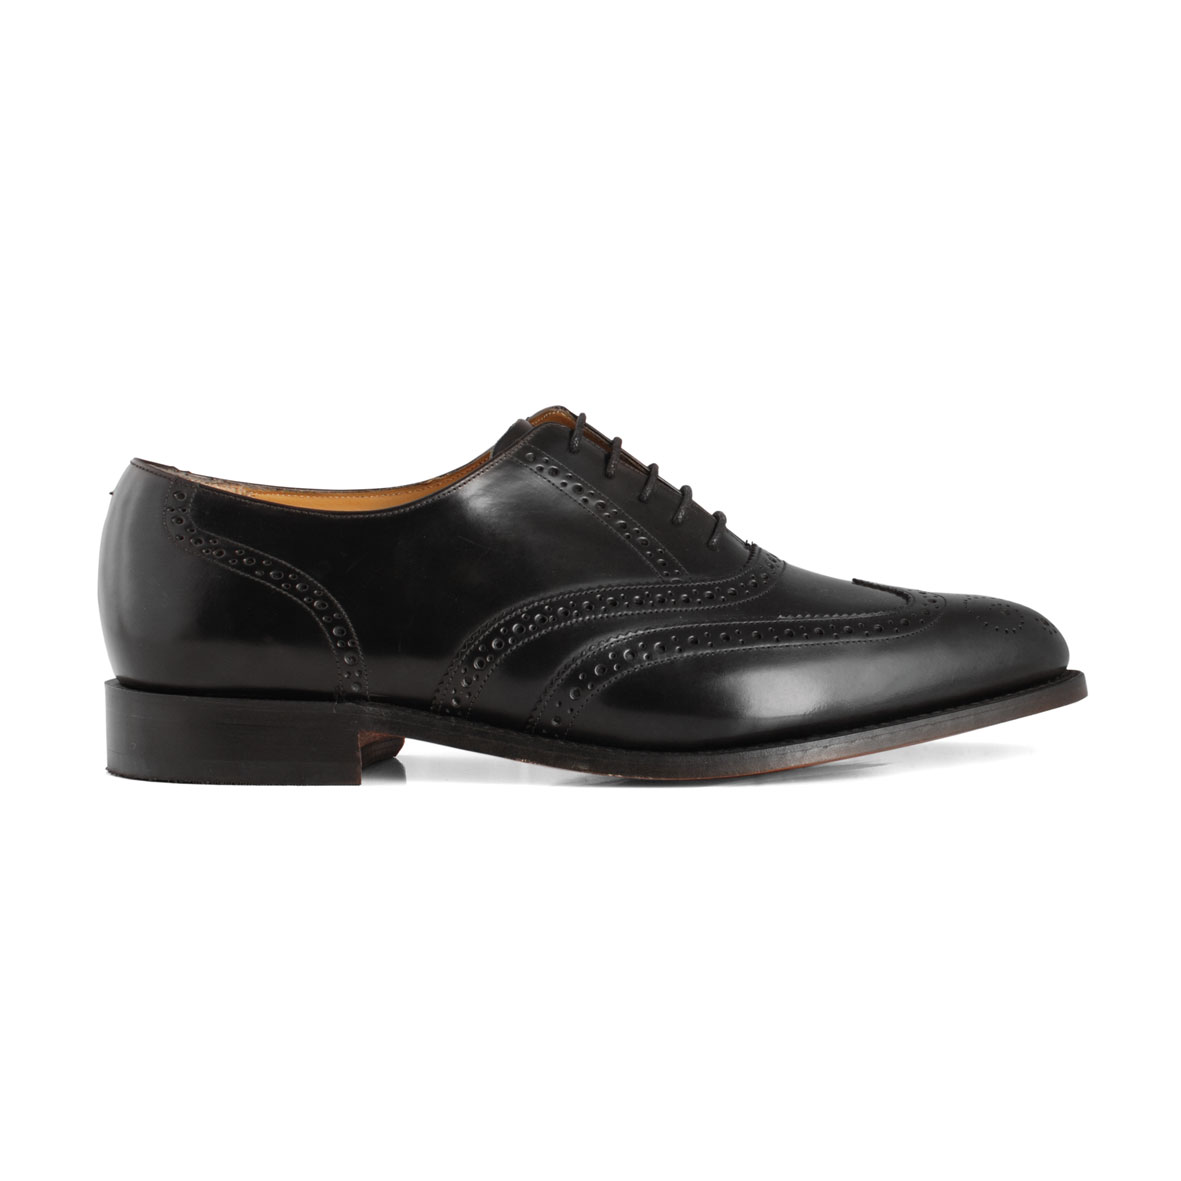 Barker Albert Black shoes